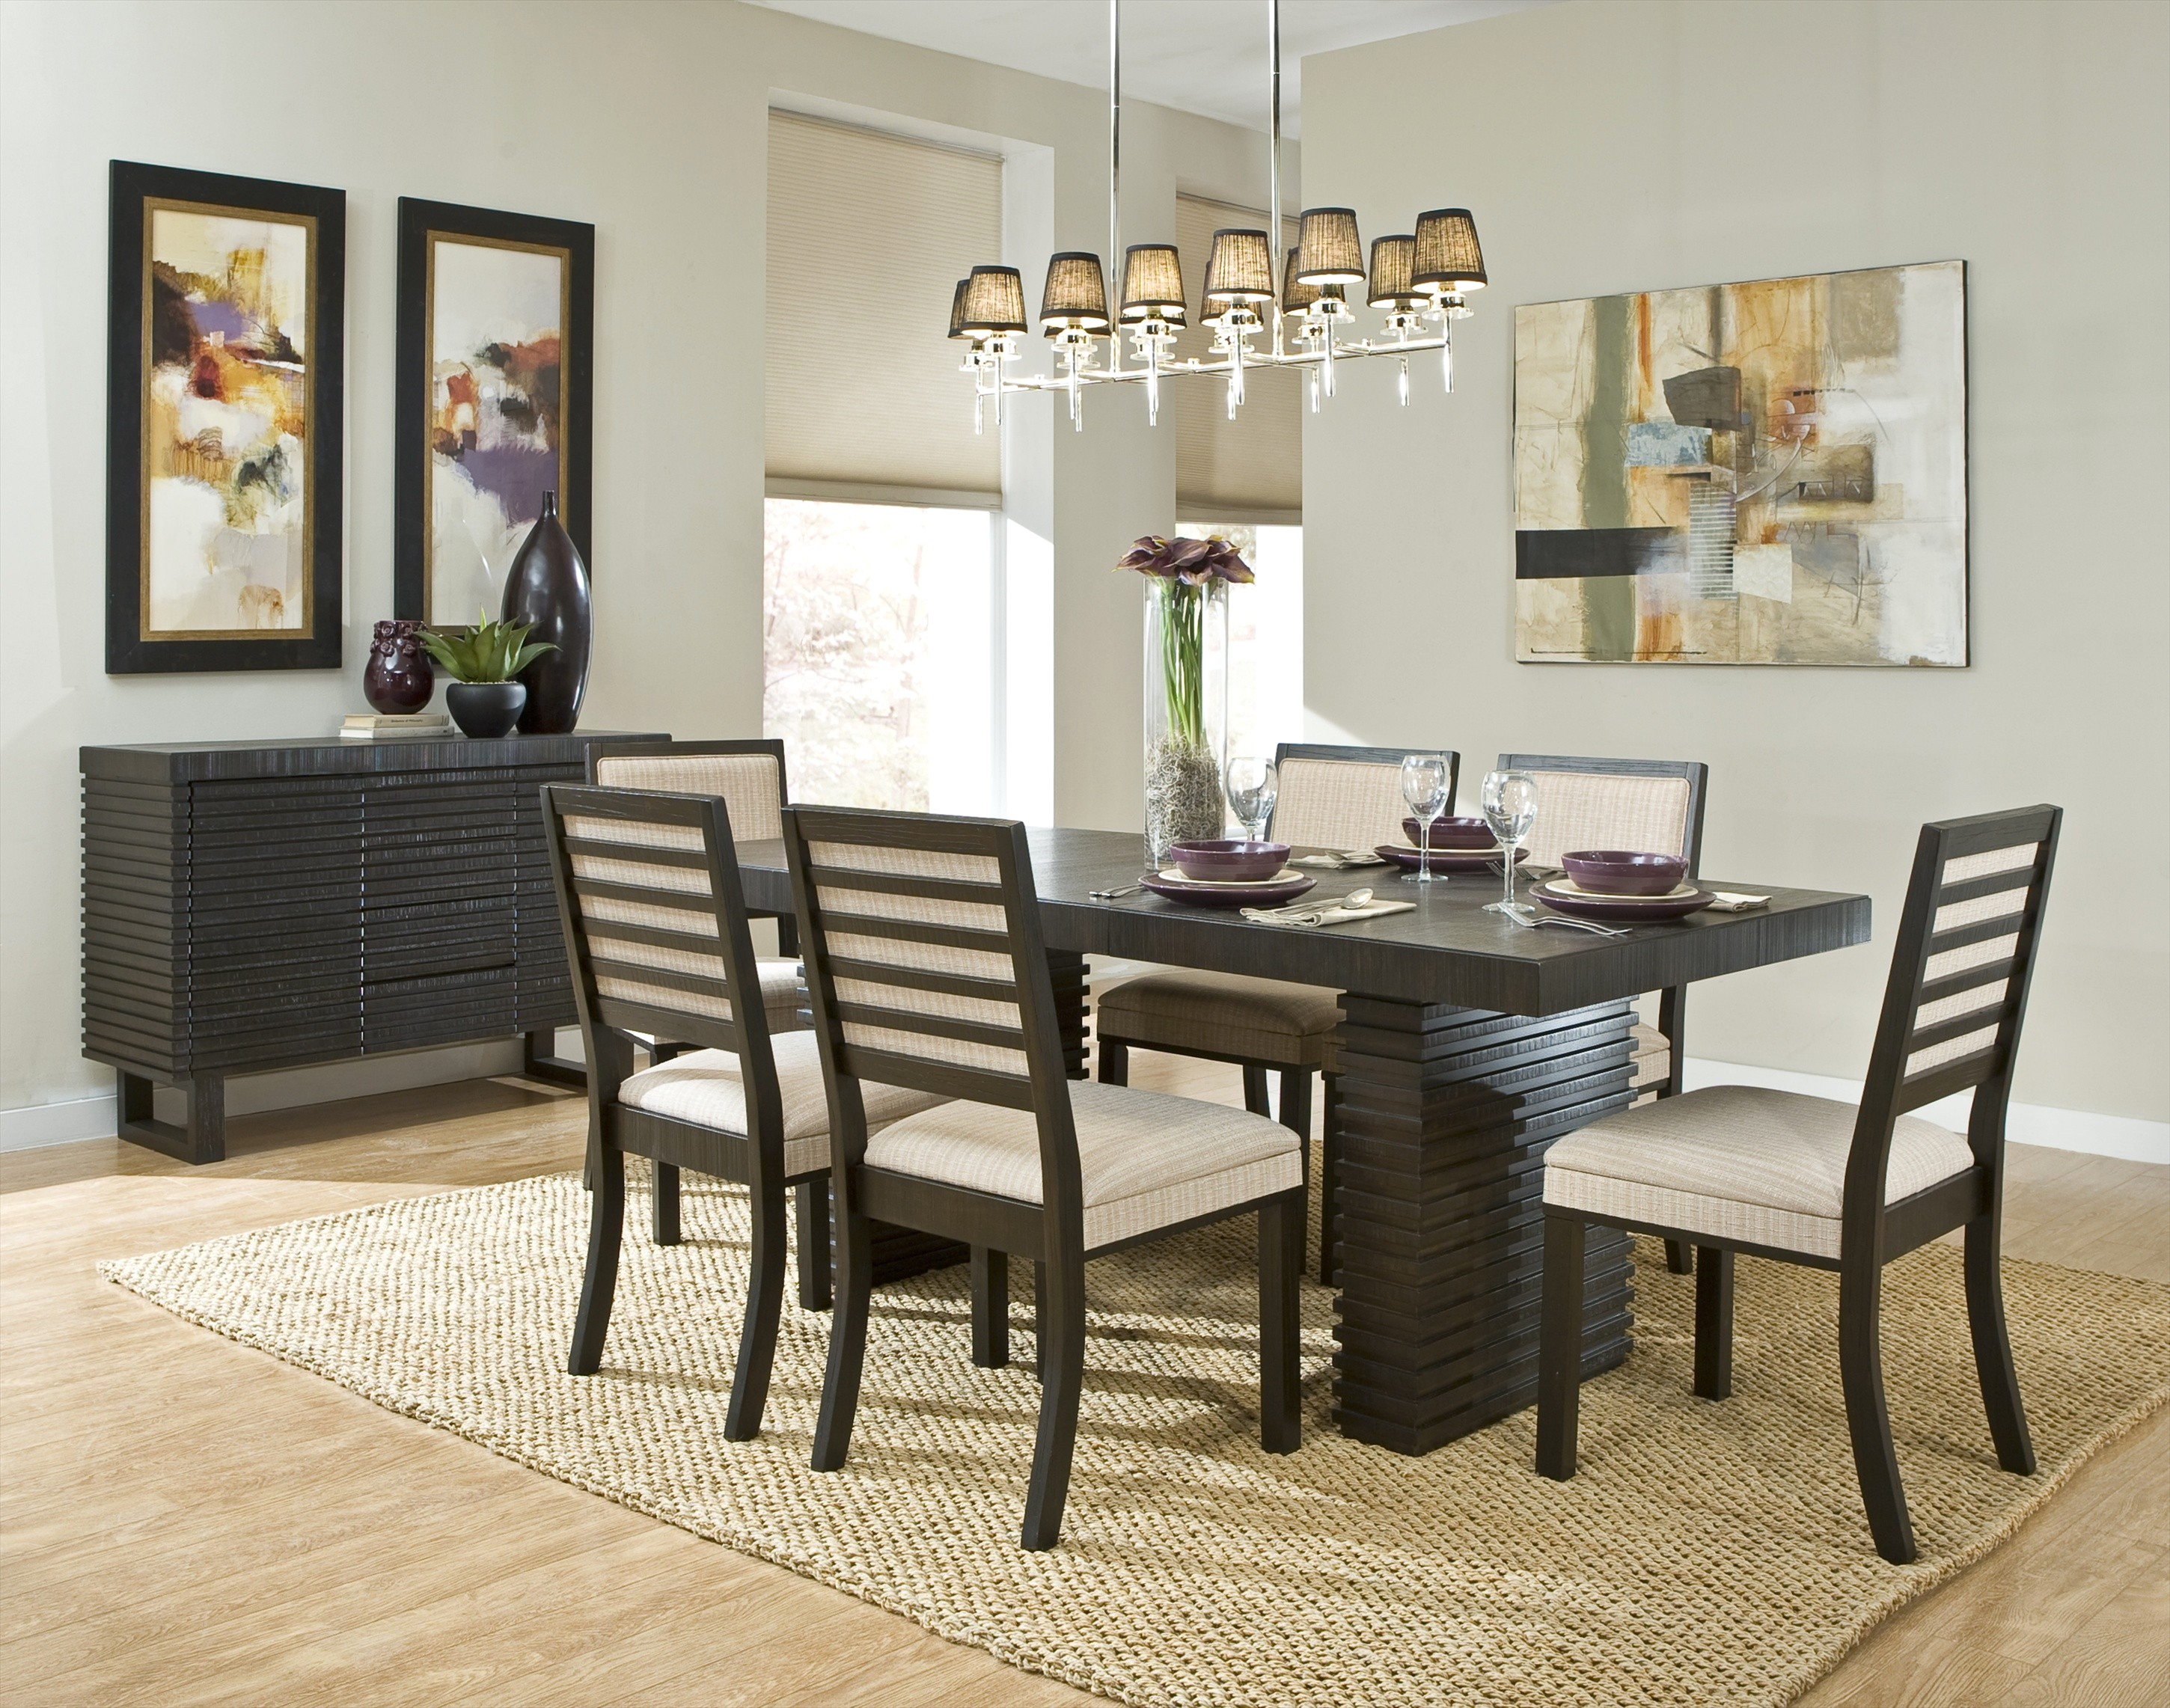 Modern dining table accessories - Contemporary Modern Dining Room With Cool Chandelier Rug And Wooden Furniture Set With Accessories